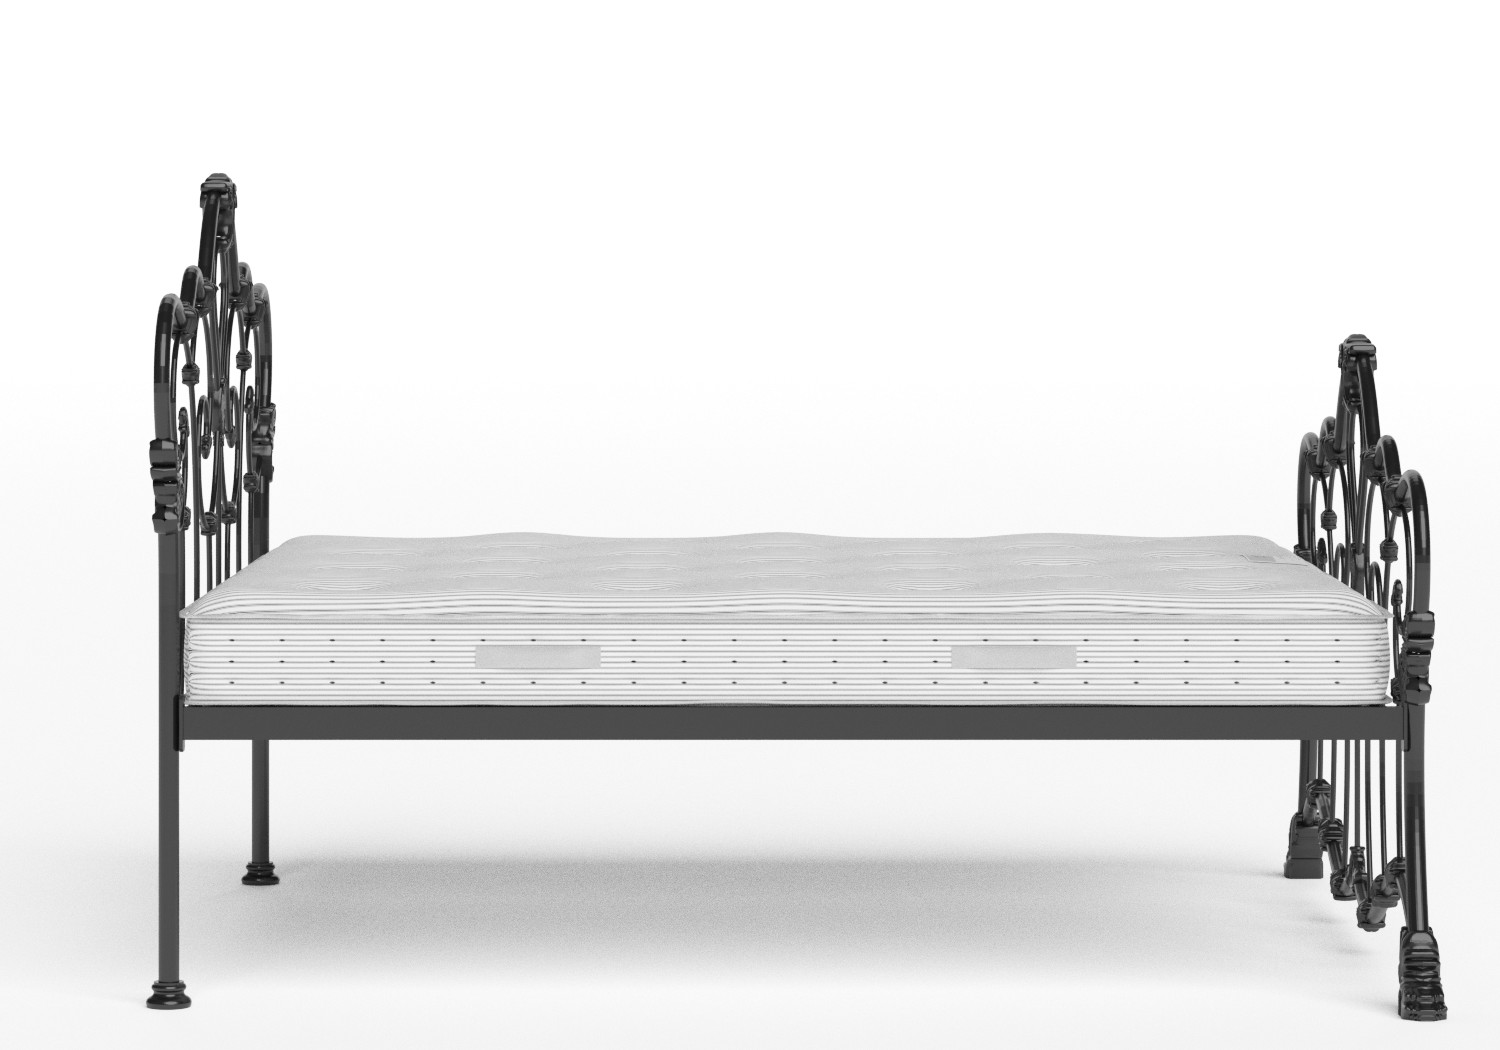 Athalone Iron/Metal Bed in Satin Black shown with Juno 1 mattress